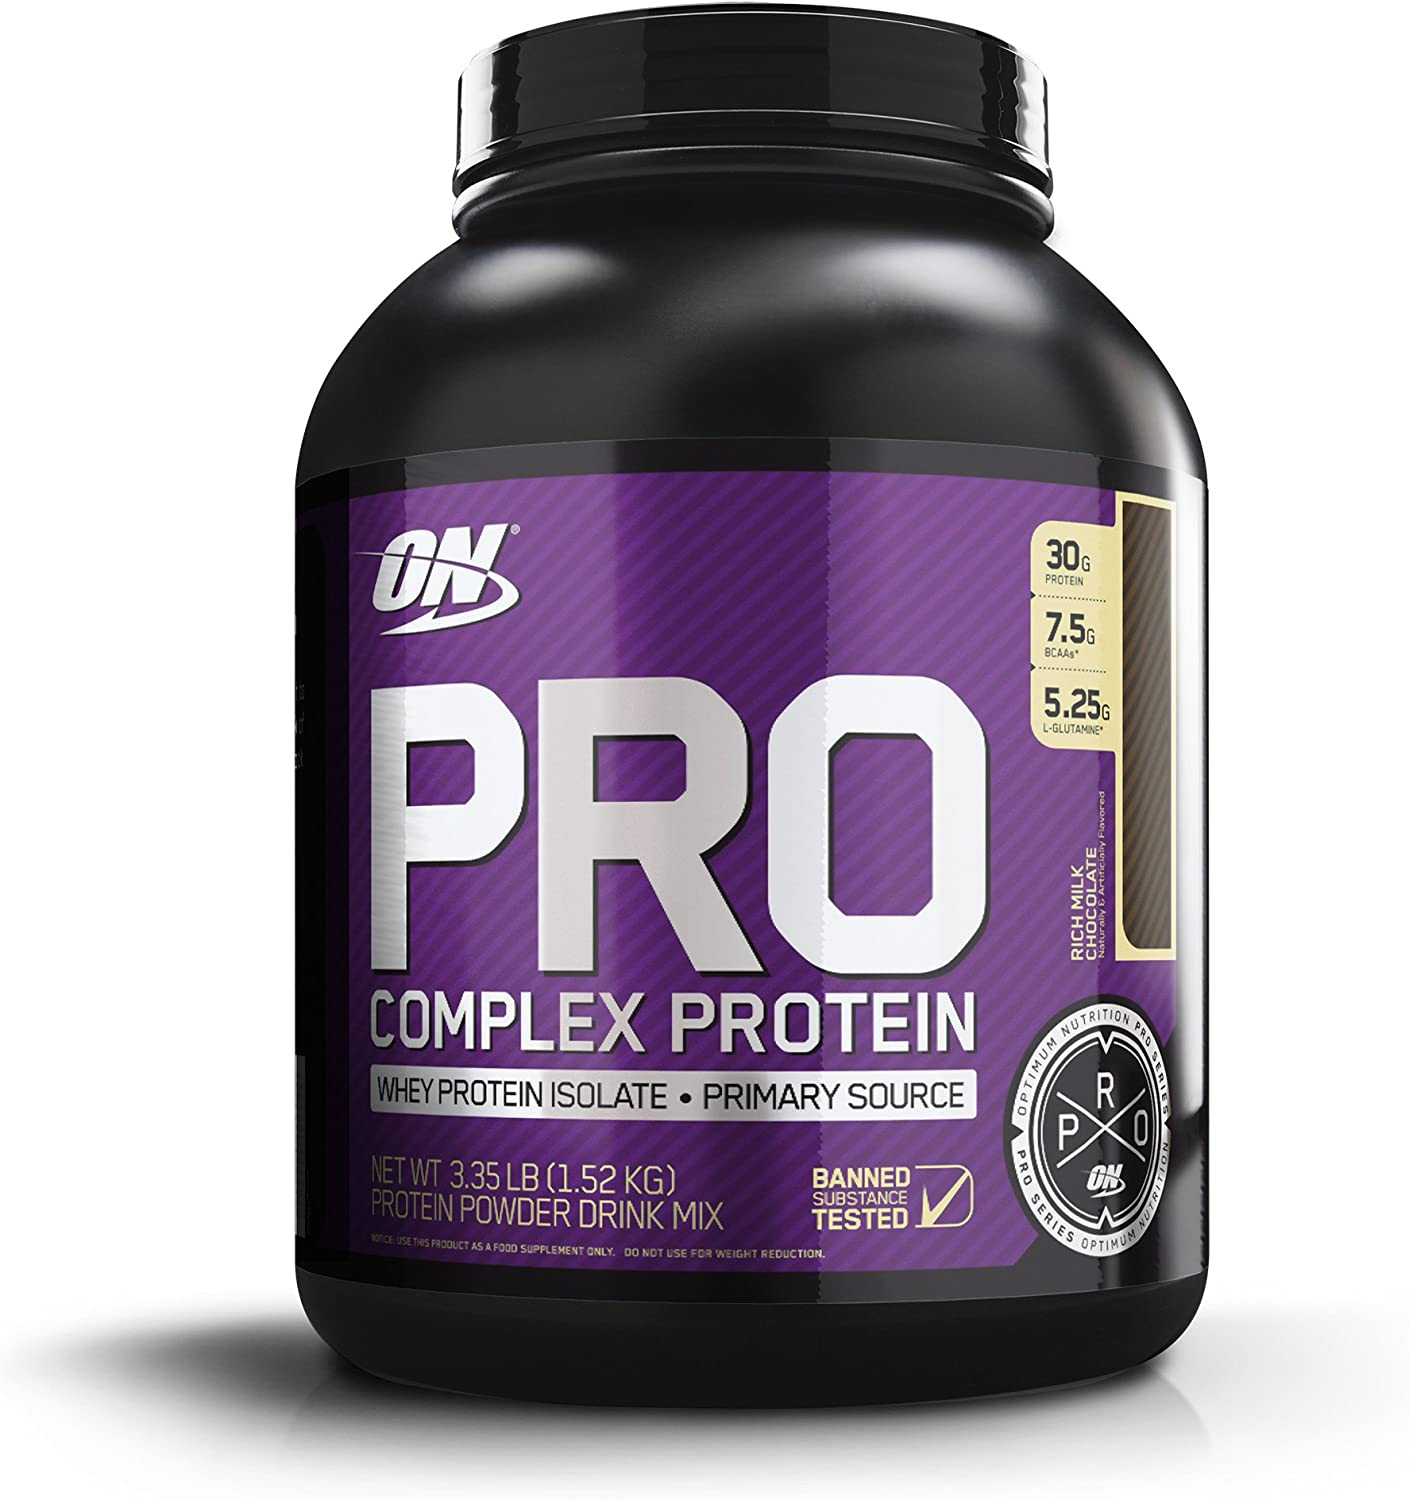 OPTIMUM NUTRITION Pro Complex Whey Protein Powder Blend, Rich Milk Chocolate, 3.35 lbs Packaging May Vary